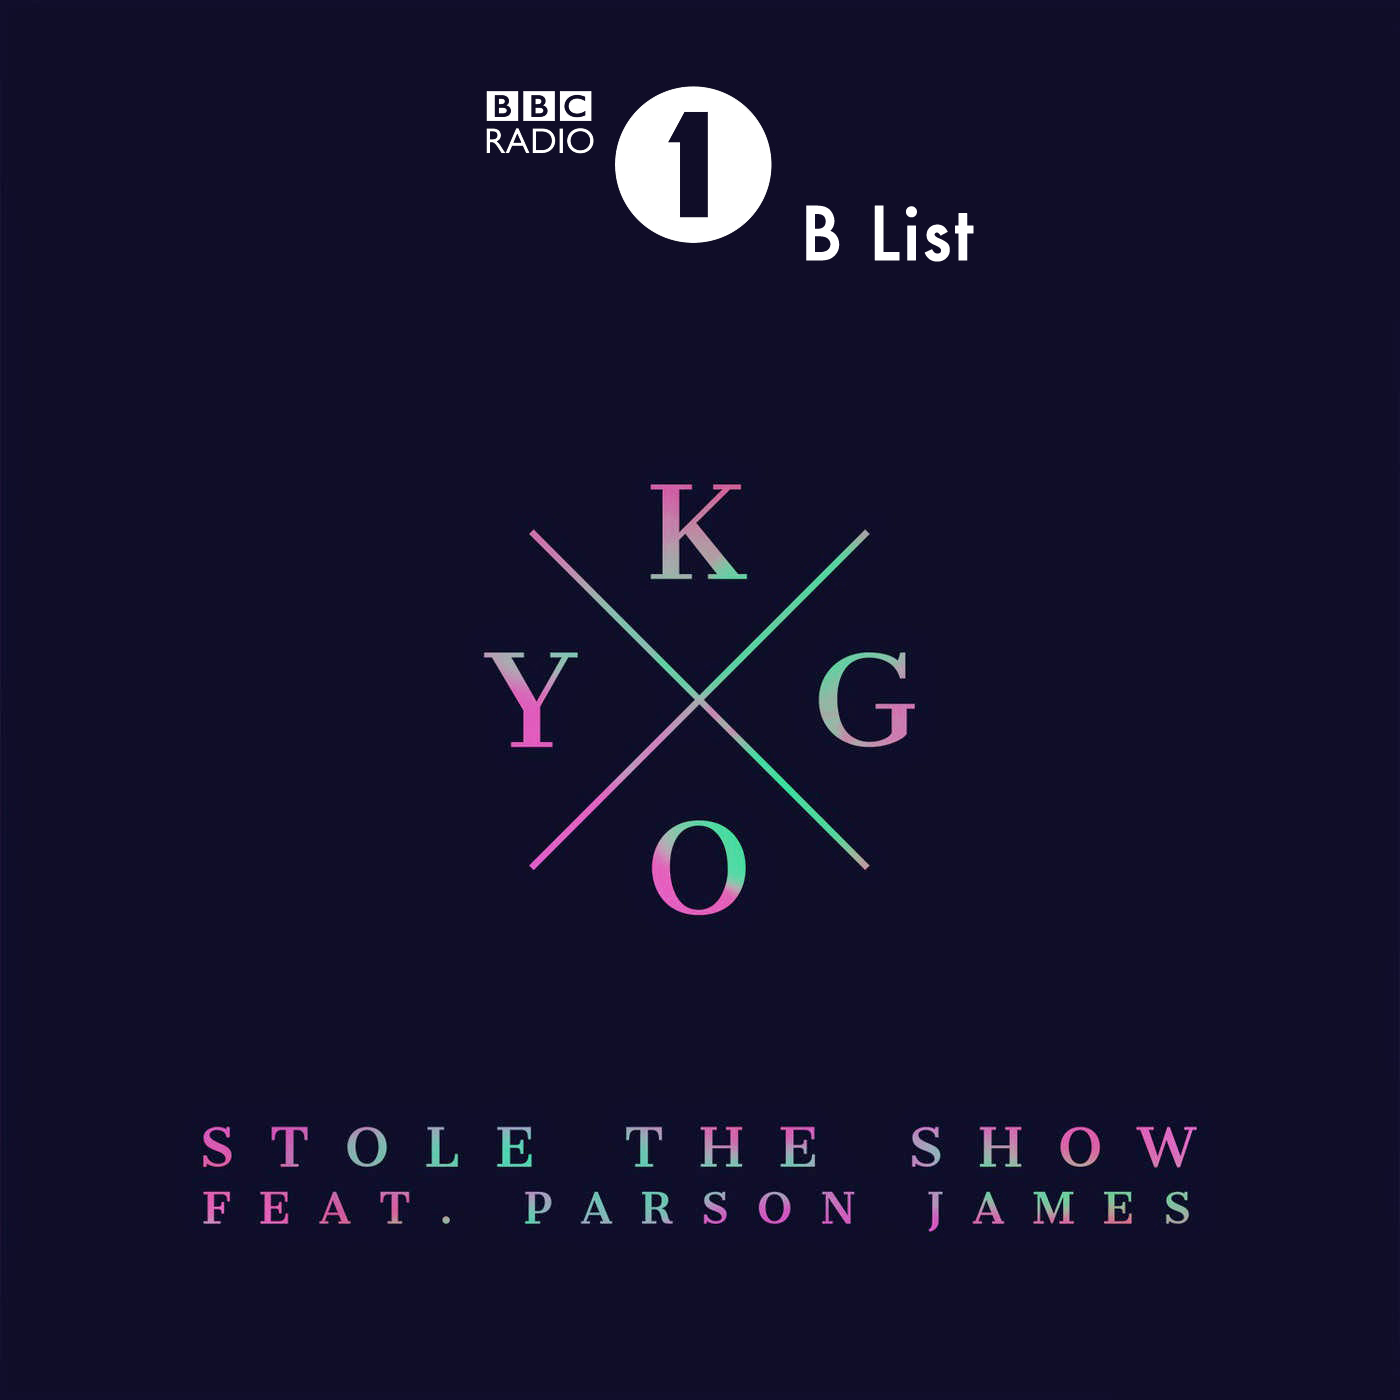 Kygo's 'Stole The Show' climbs Radio 1 playlist